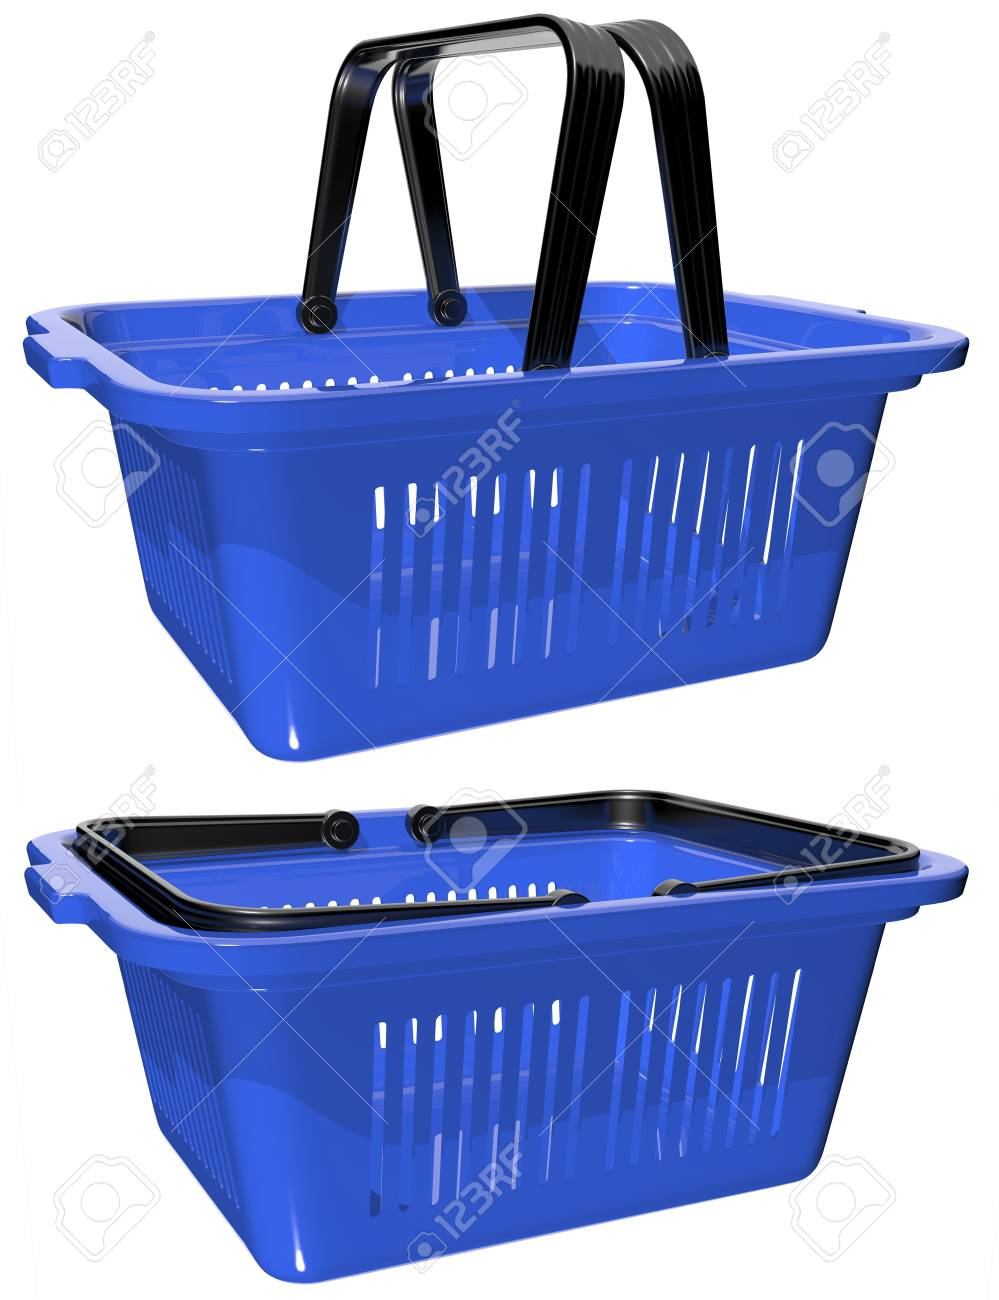 plastic blue basket with handles for shopping Stock Photo - 17174699